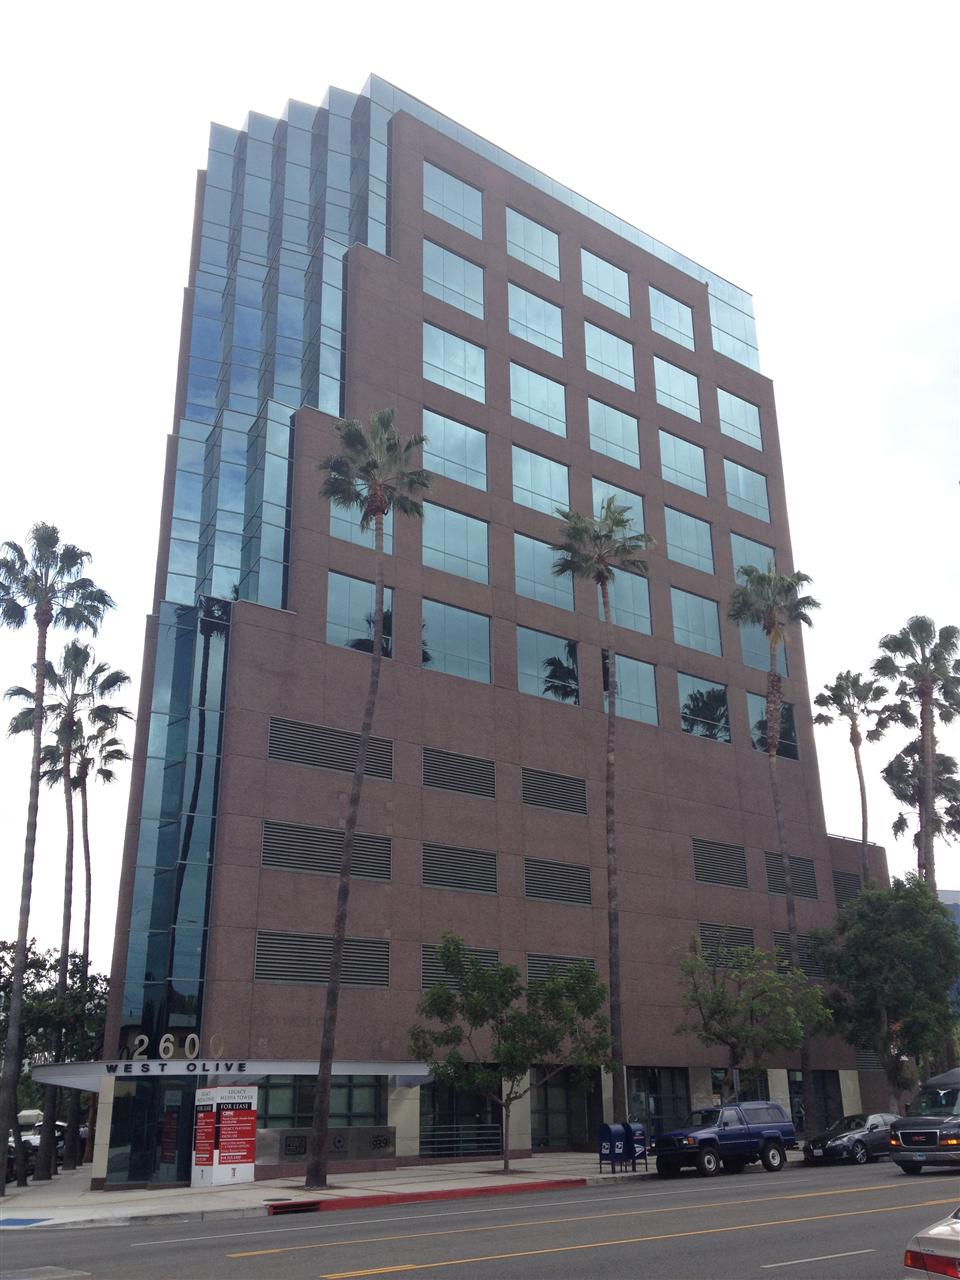 2600 W Olive Ave - Legacy Media Tower - Office - Lease